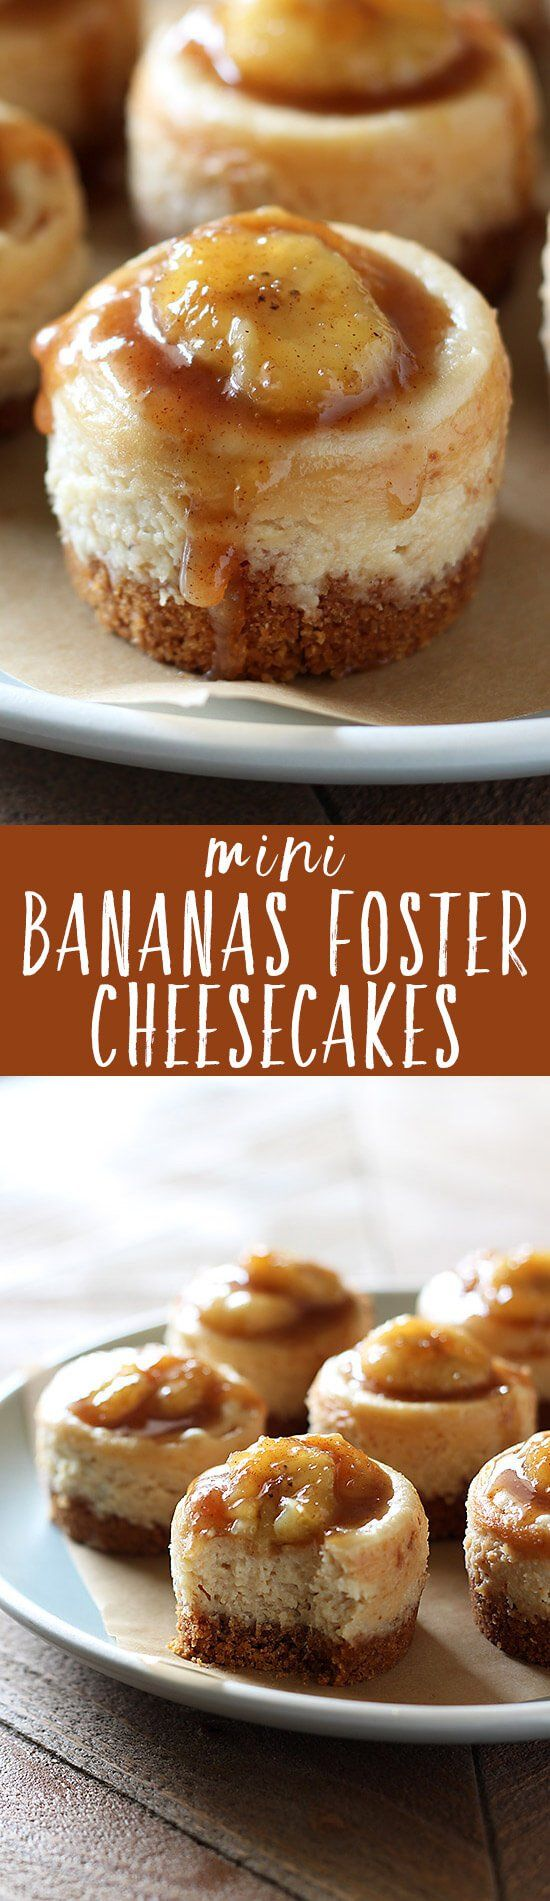 The BEST! Everyone loves bananas foster but when added to cheesecake?! Too good!!: